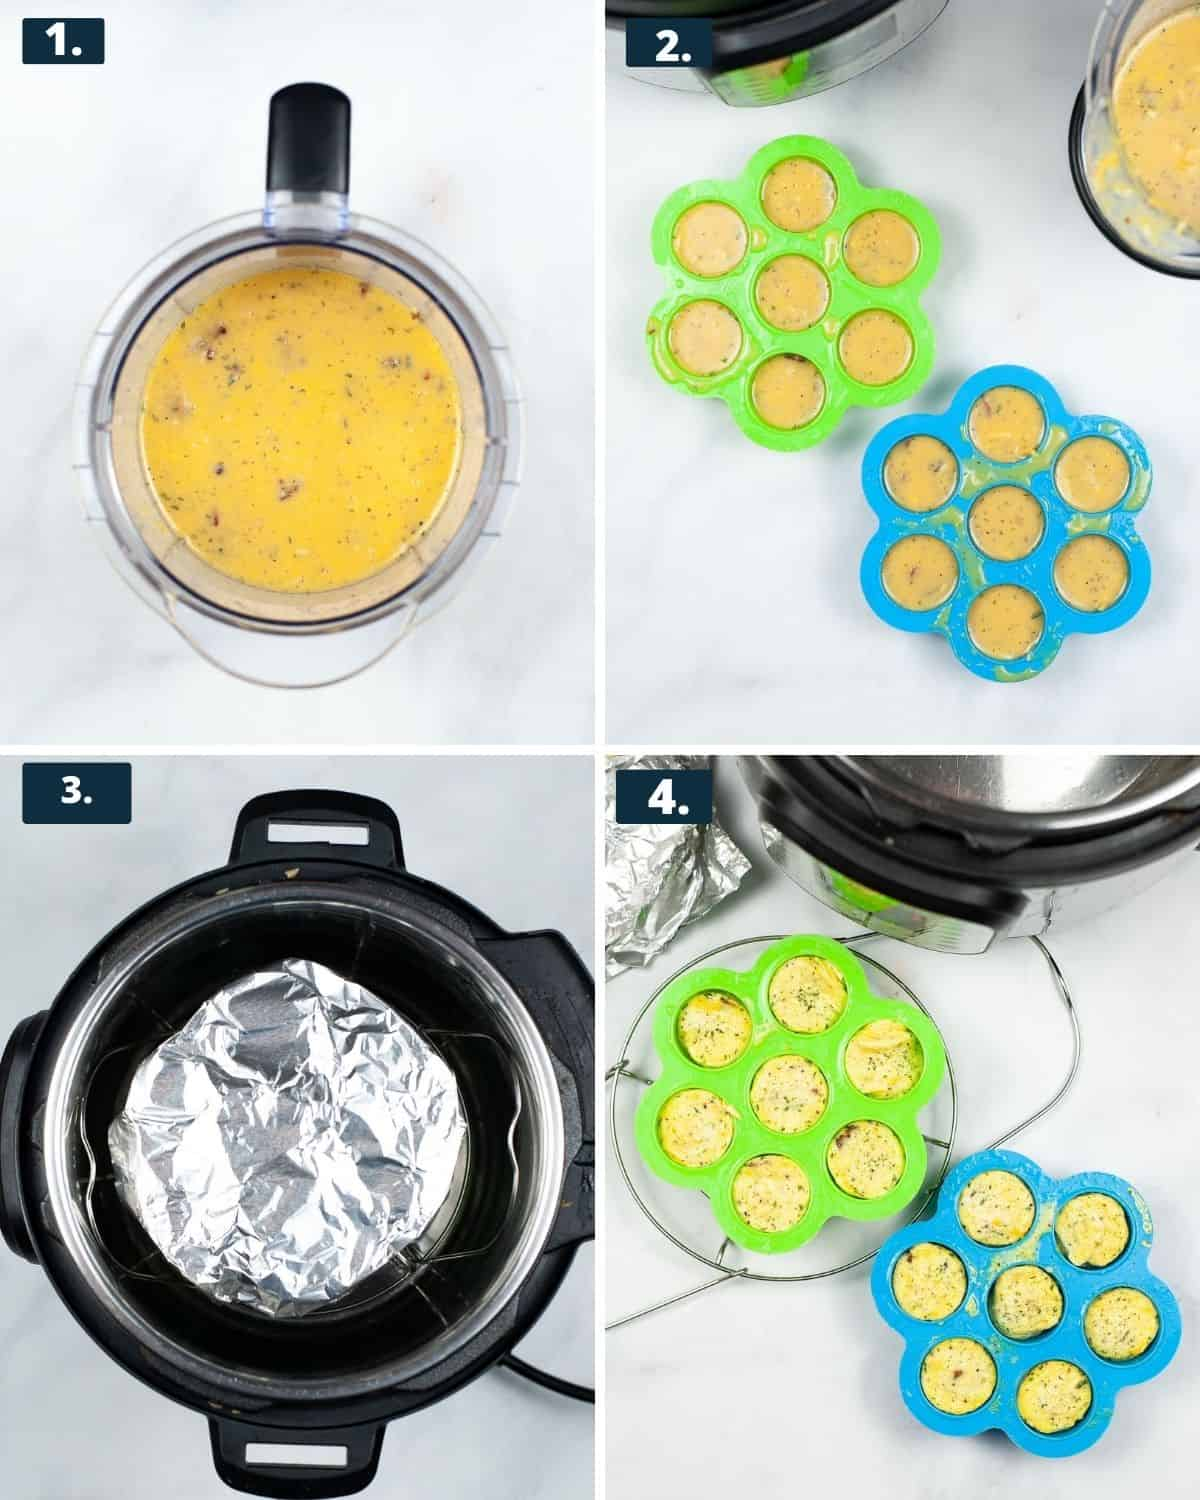 4 photos, 1st photo, eggs in a blender, 2nd photo eggs in a silicone mold, 3rd photo - a silicone mold covered in aluminum foil in an Instant Pot, 4th photo - cooked eggs in silicone molds/.